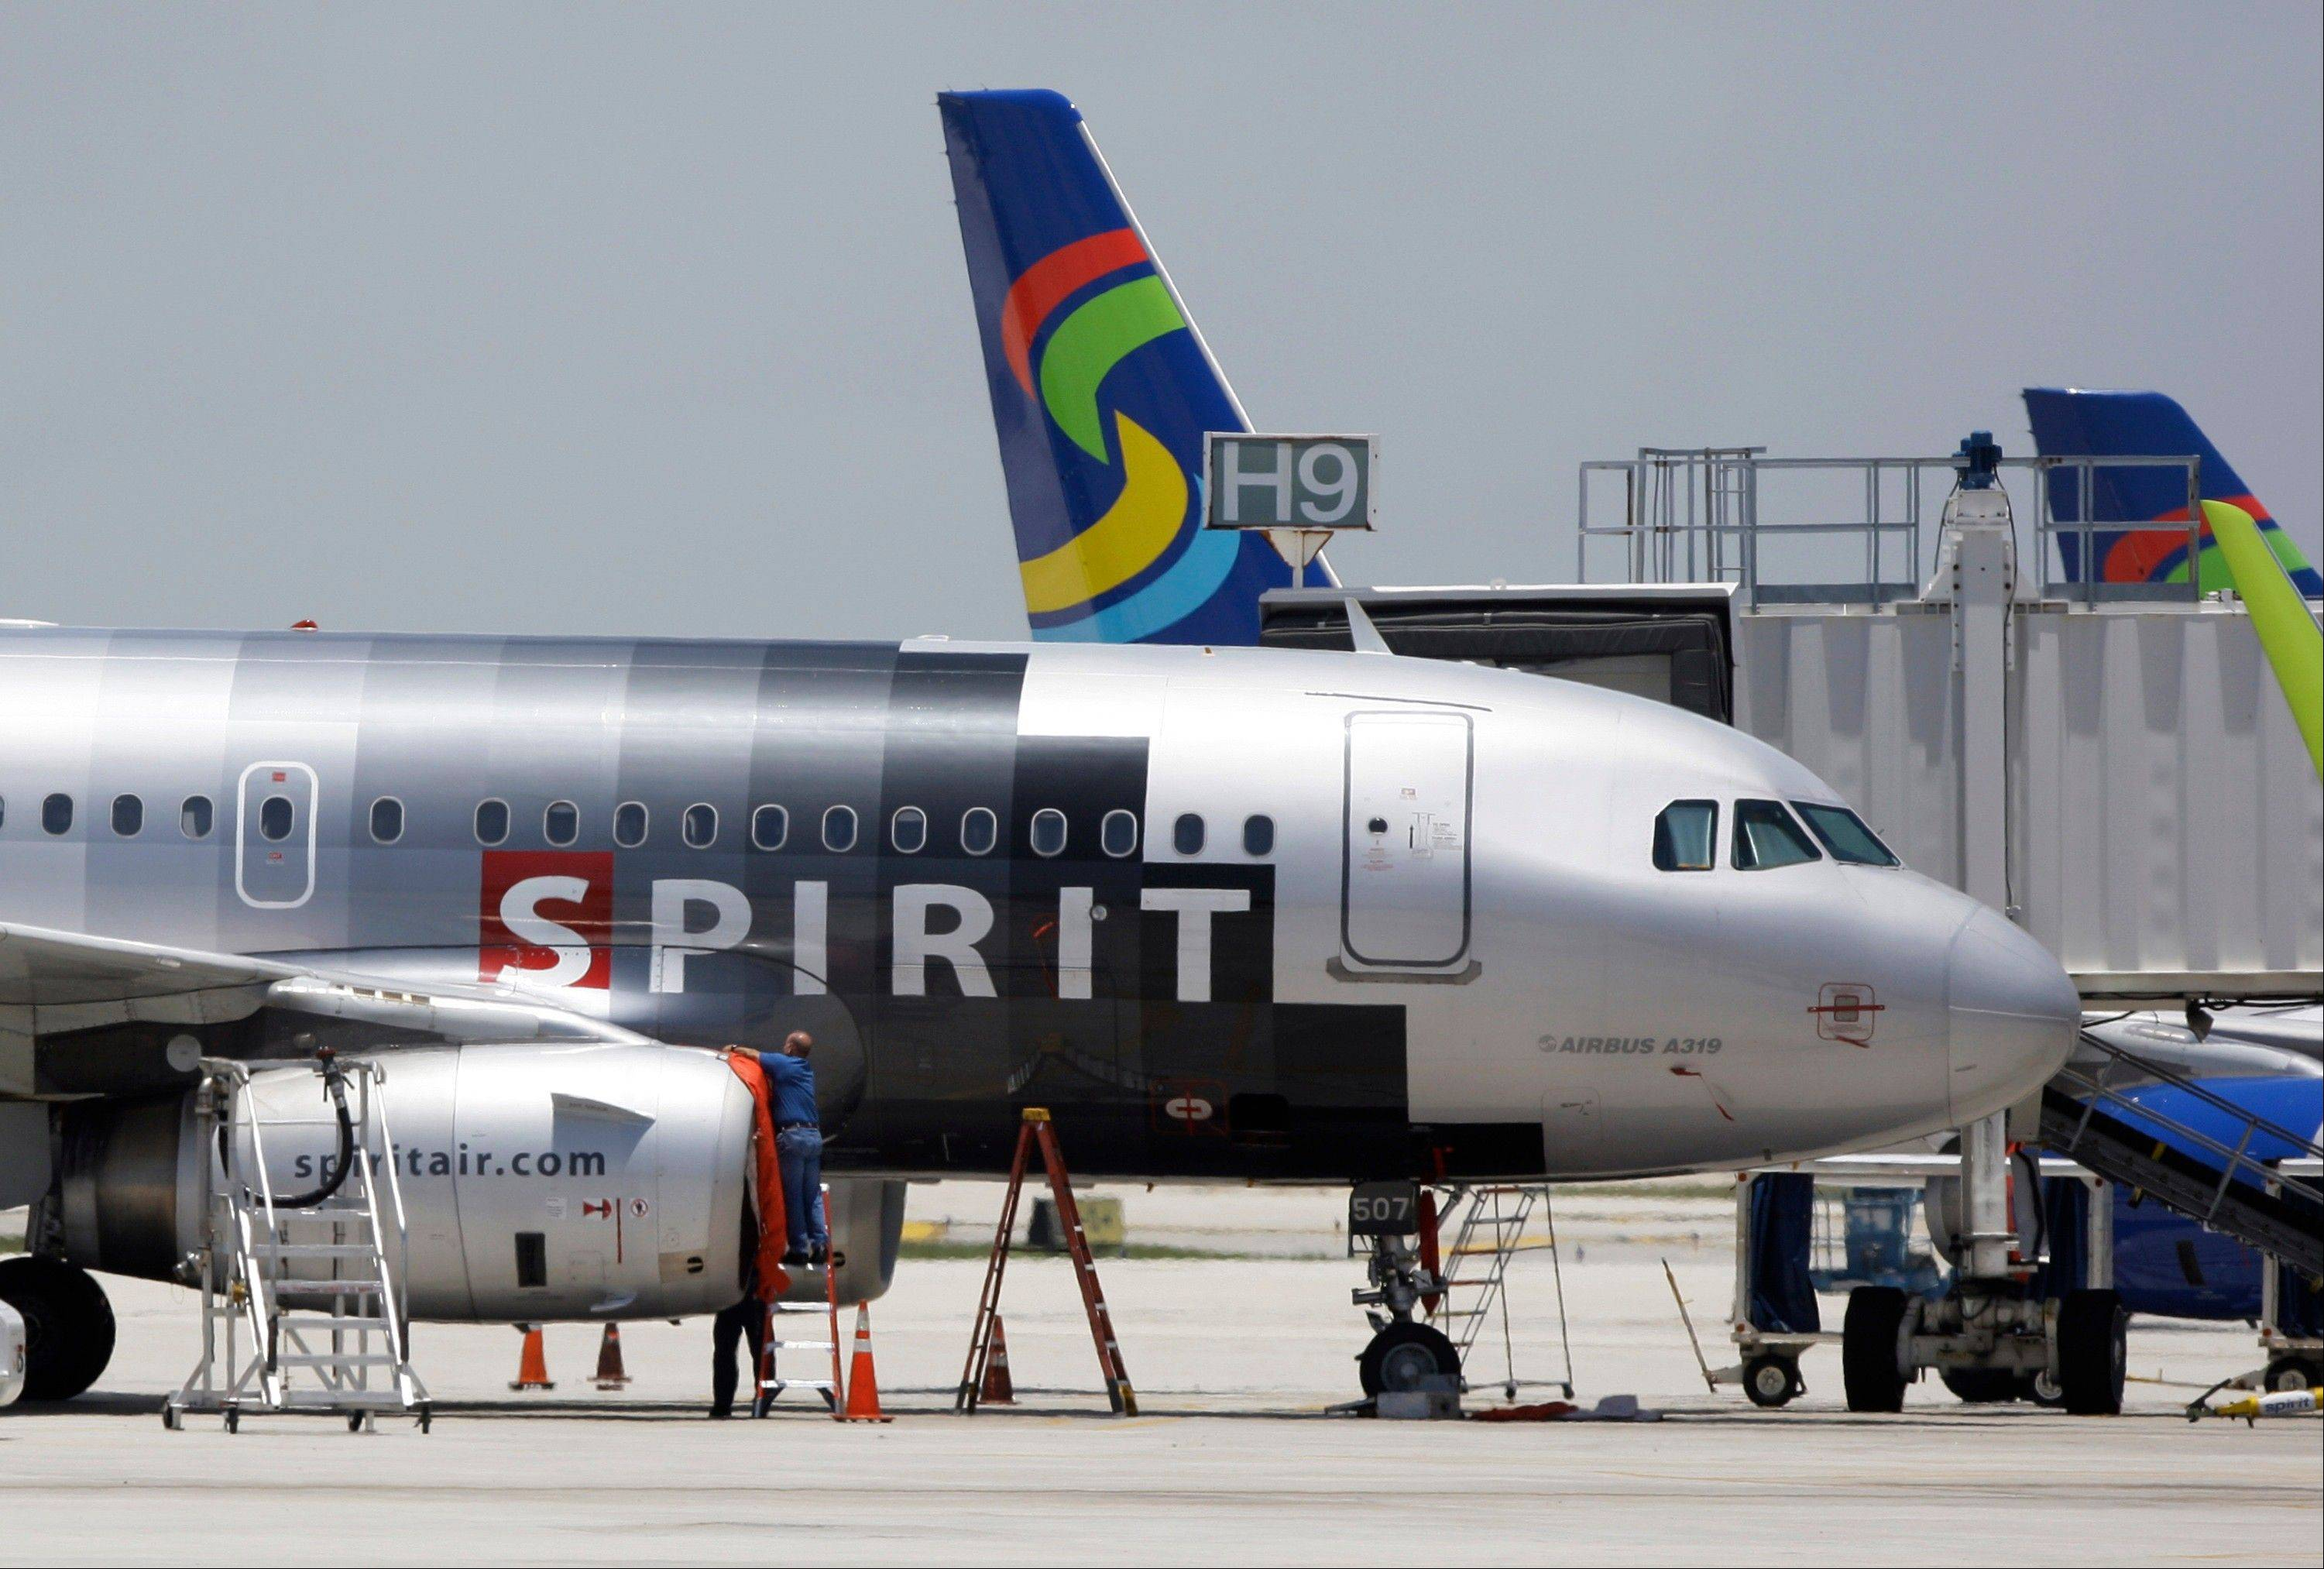 Beginning this week, Spirit Airlines will start serving wine in cans, saying the cans are easier to store, and they weigh less than bottles.